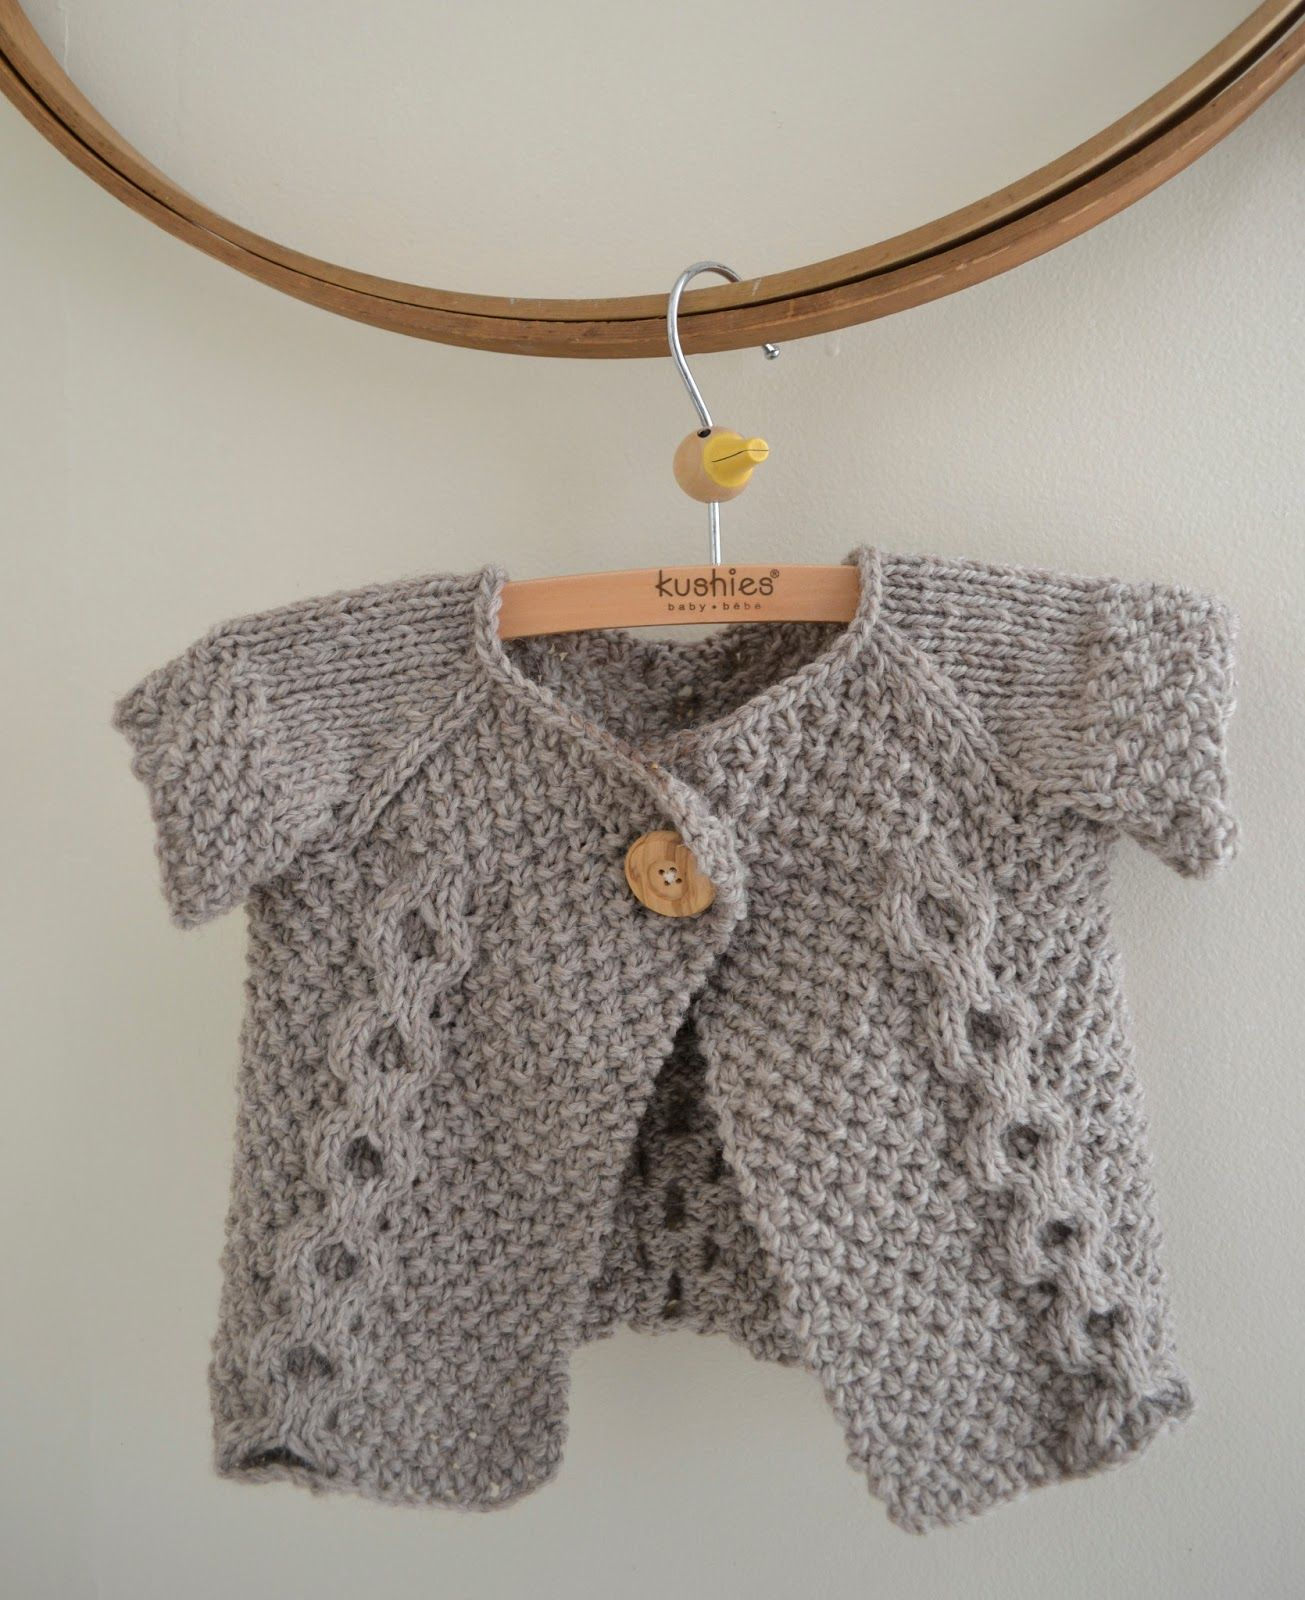 Knitting Patterns For Babies Double Knitting : Top 10 Amazing Knitting Patterns Baby sweaters, Free pattern and Patterns